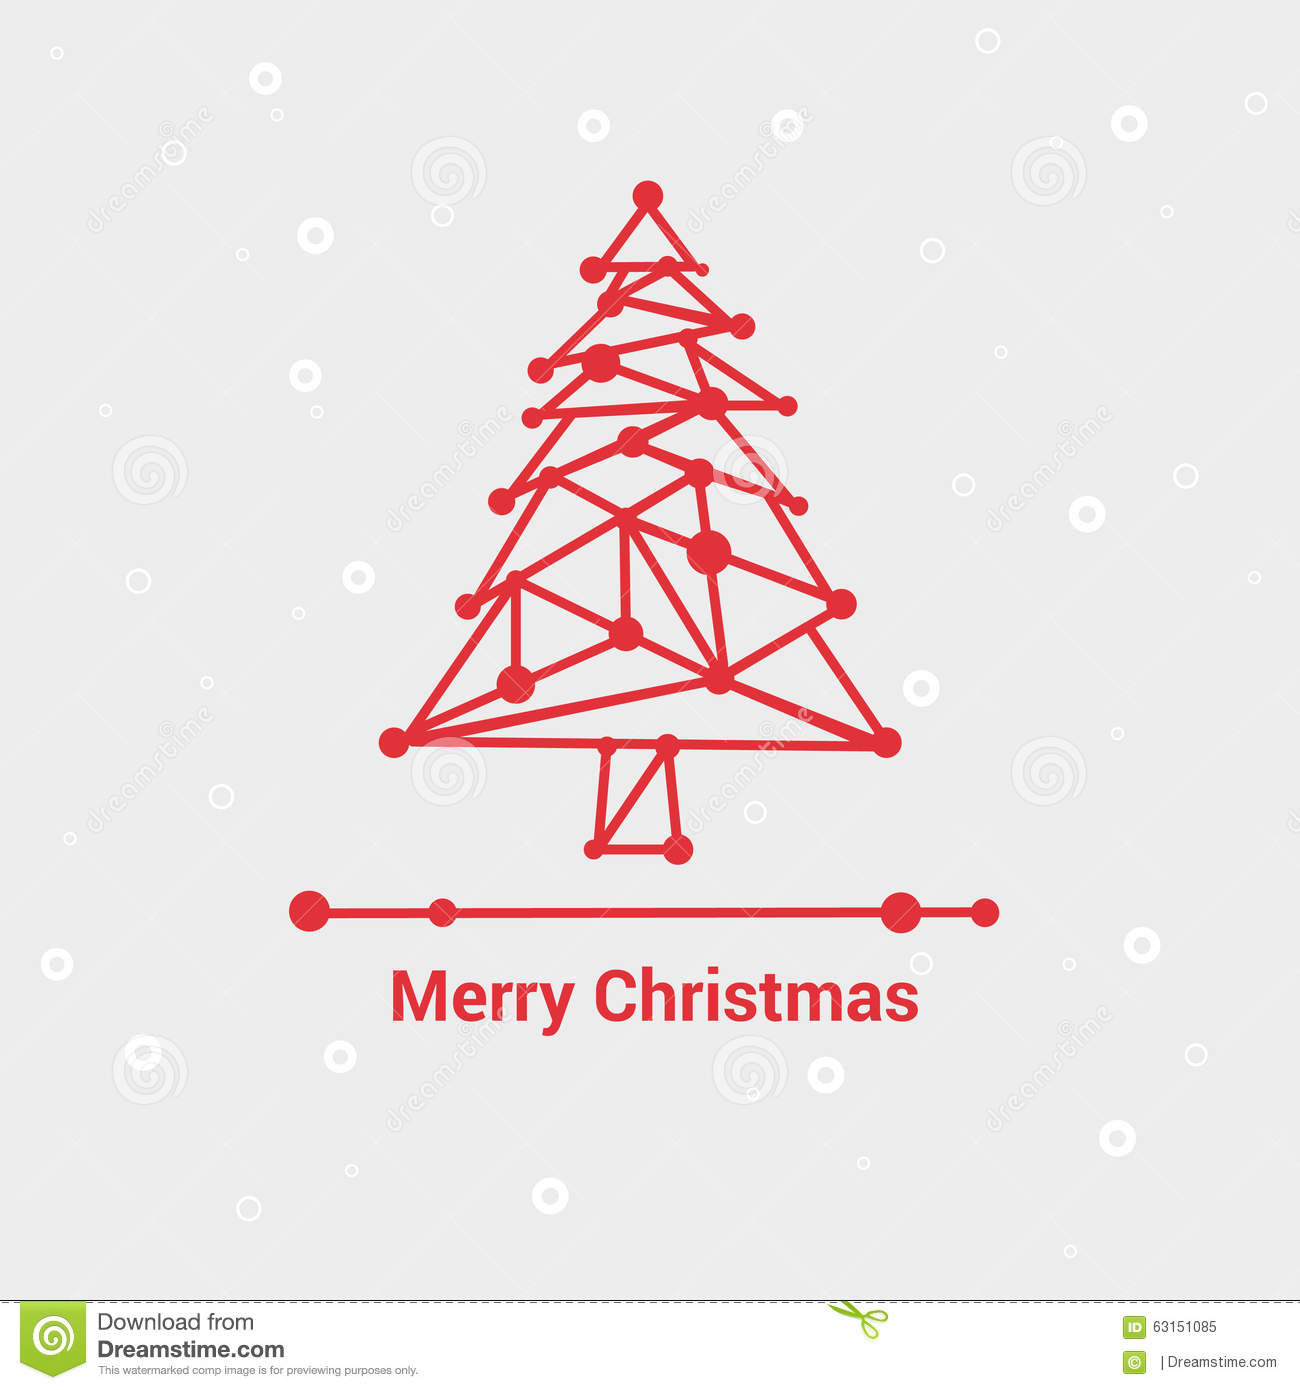 merry christmas and happy new year line minimalist style greeting